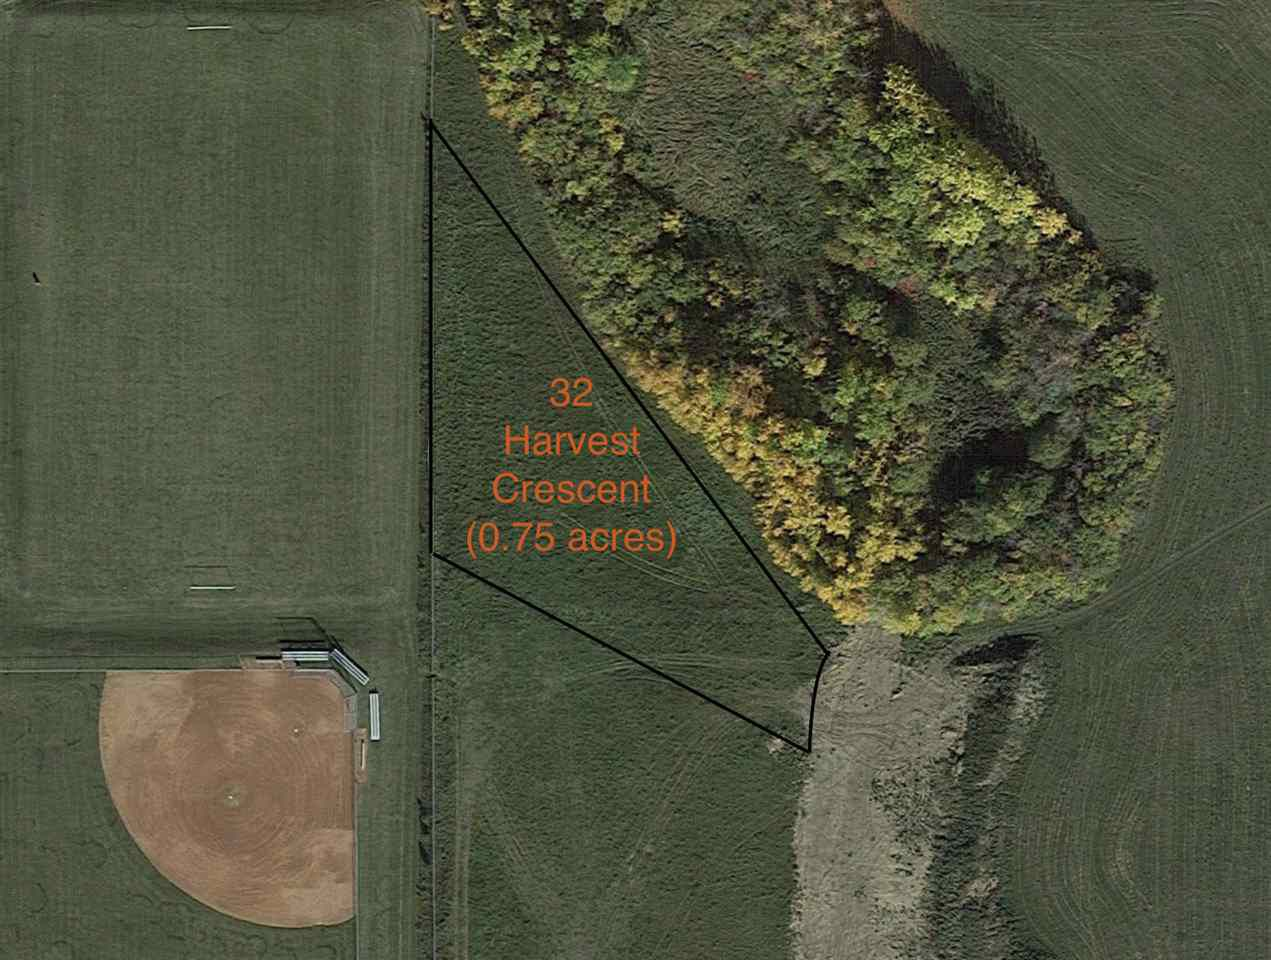 Main Photo: 32 HARVEST Crescent: Ardrossan Vacant Lot for sale : MLS®# E4140920